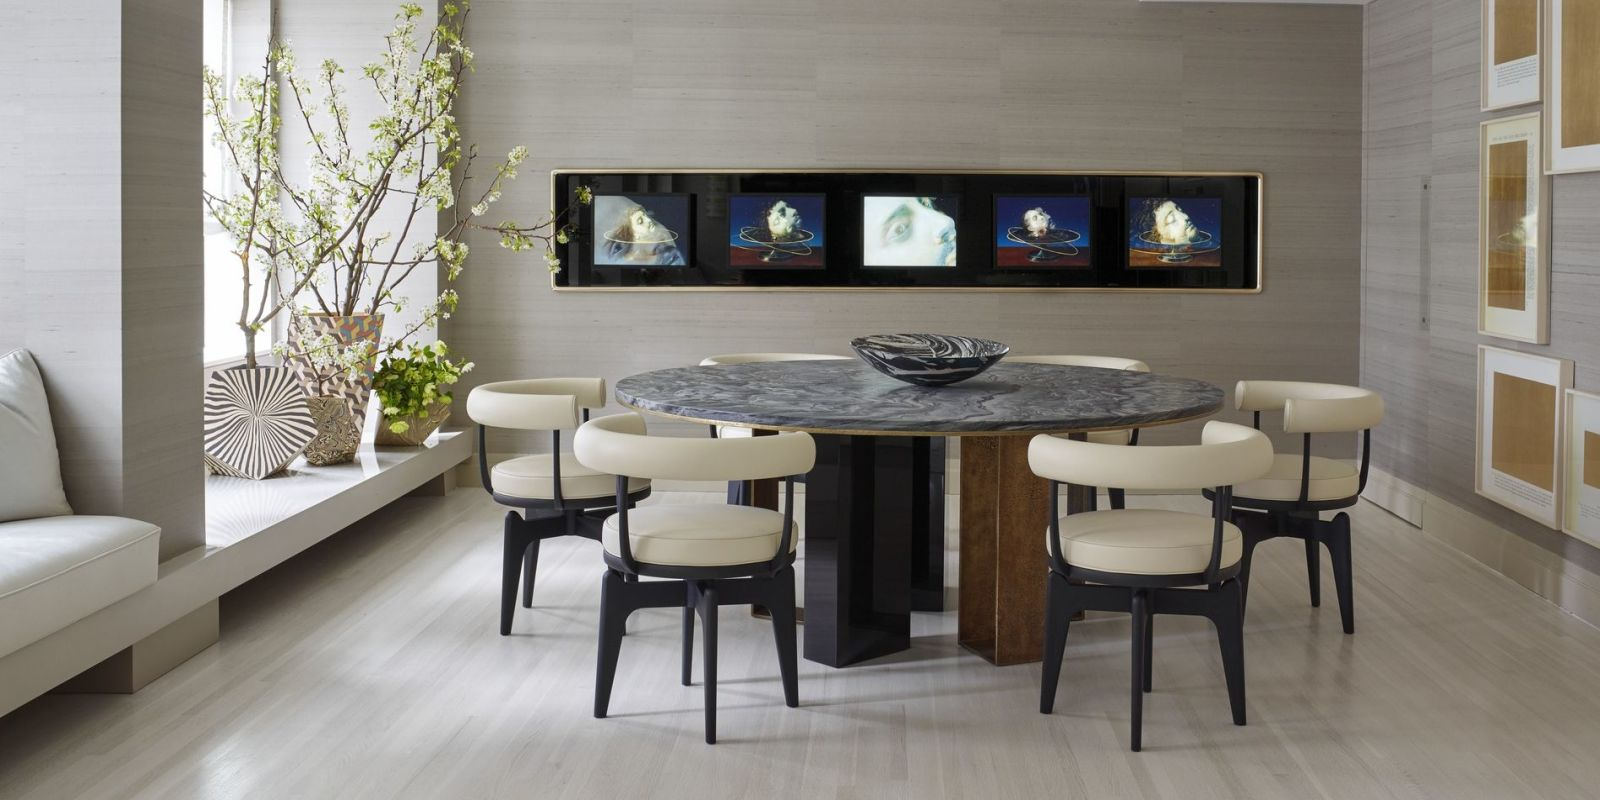 25 modern dining room decorating ideas contemporary for Dining room decorating ideas modern